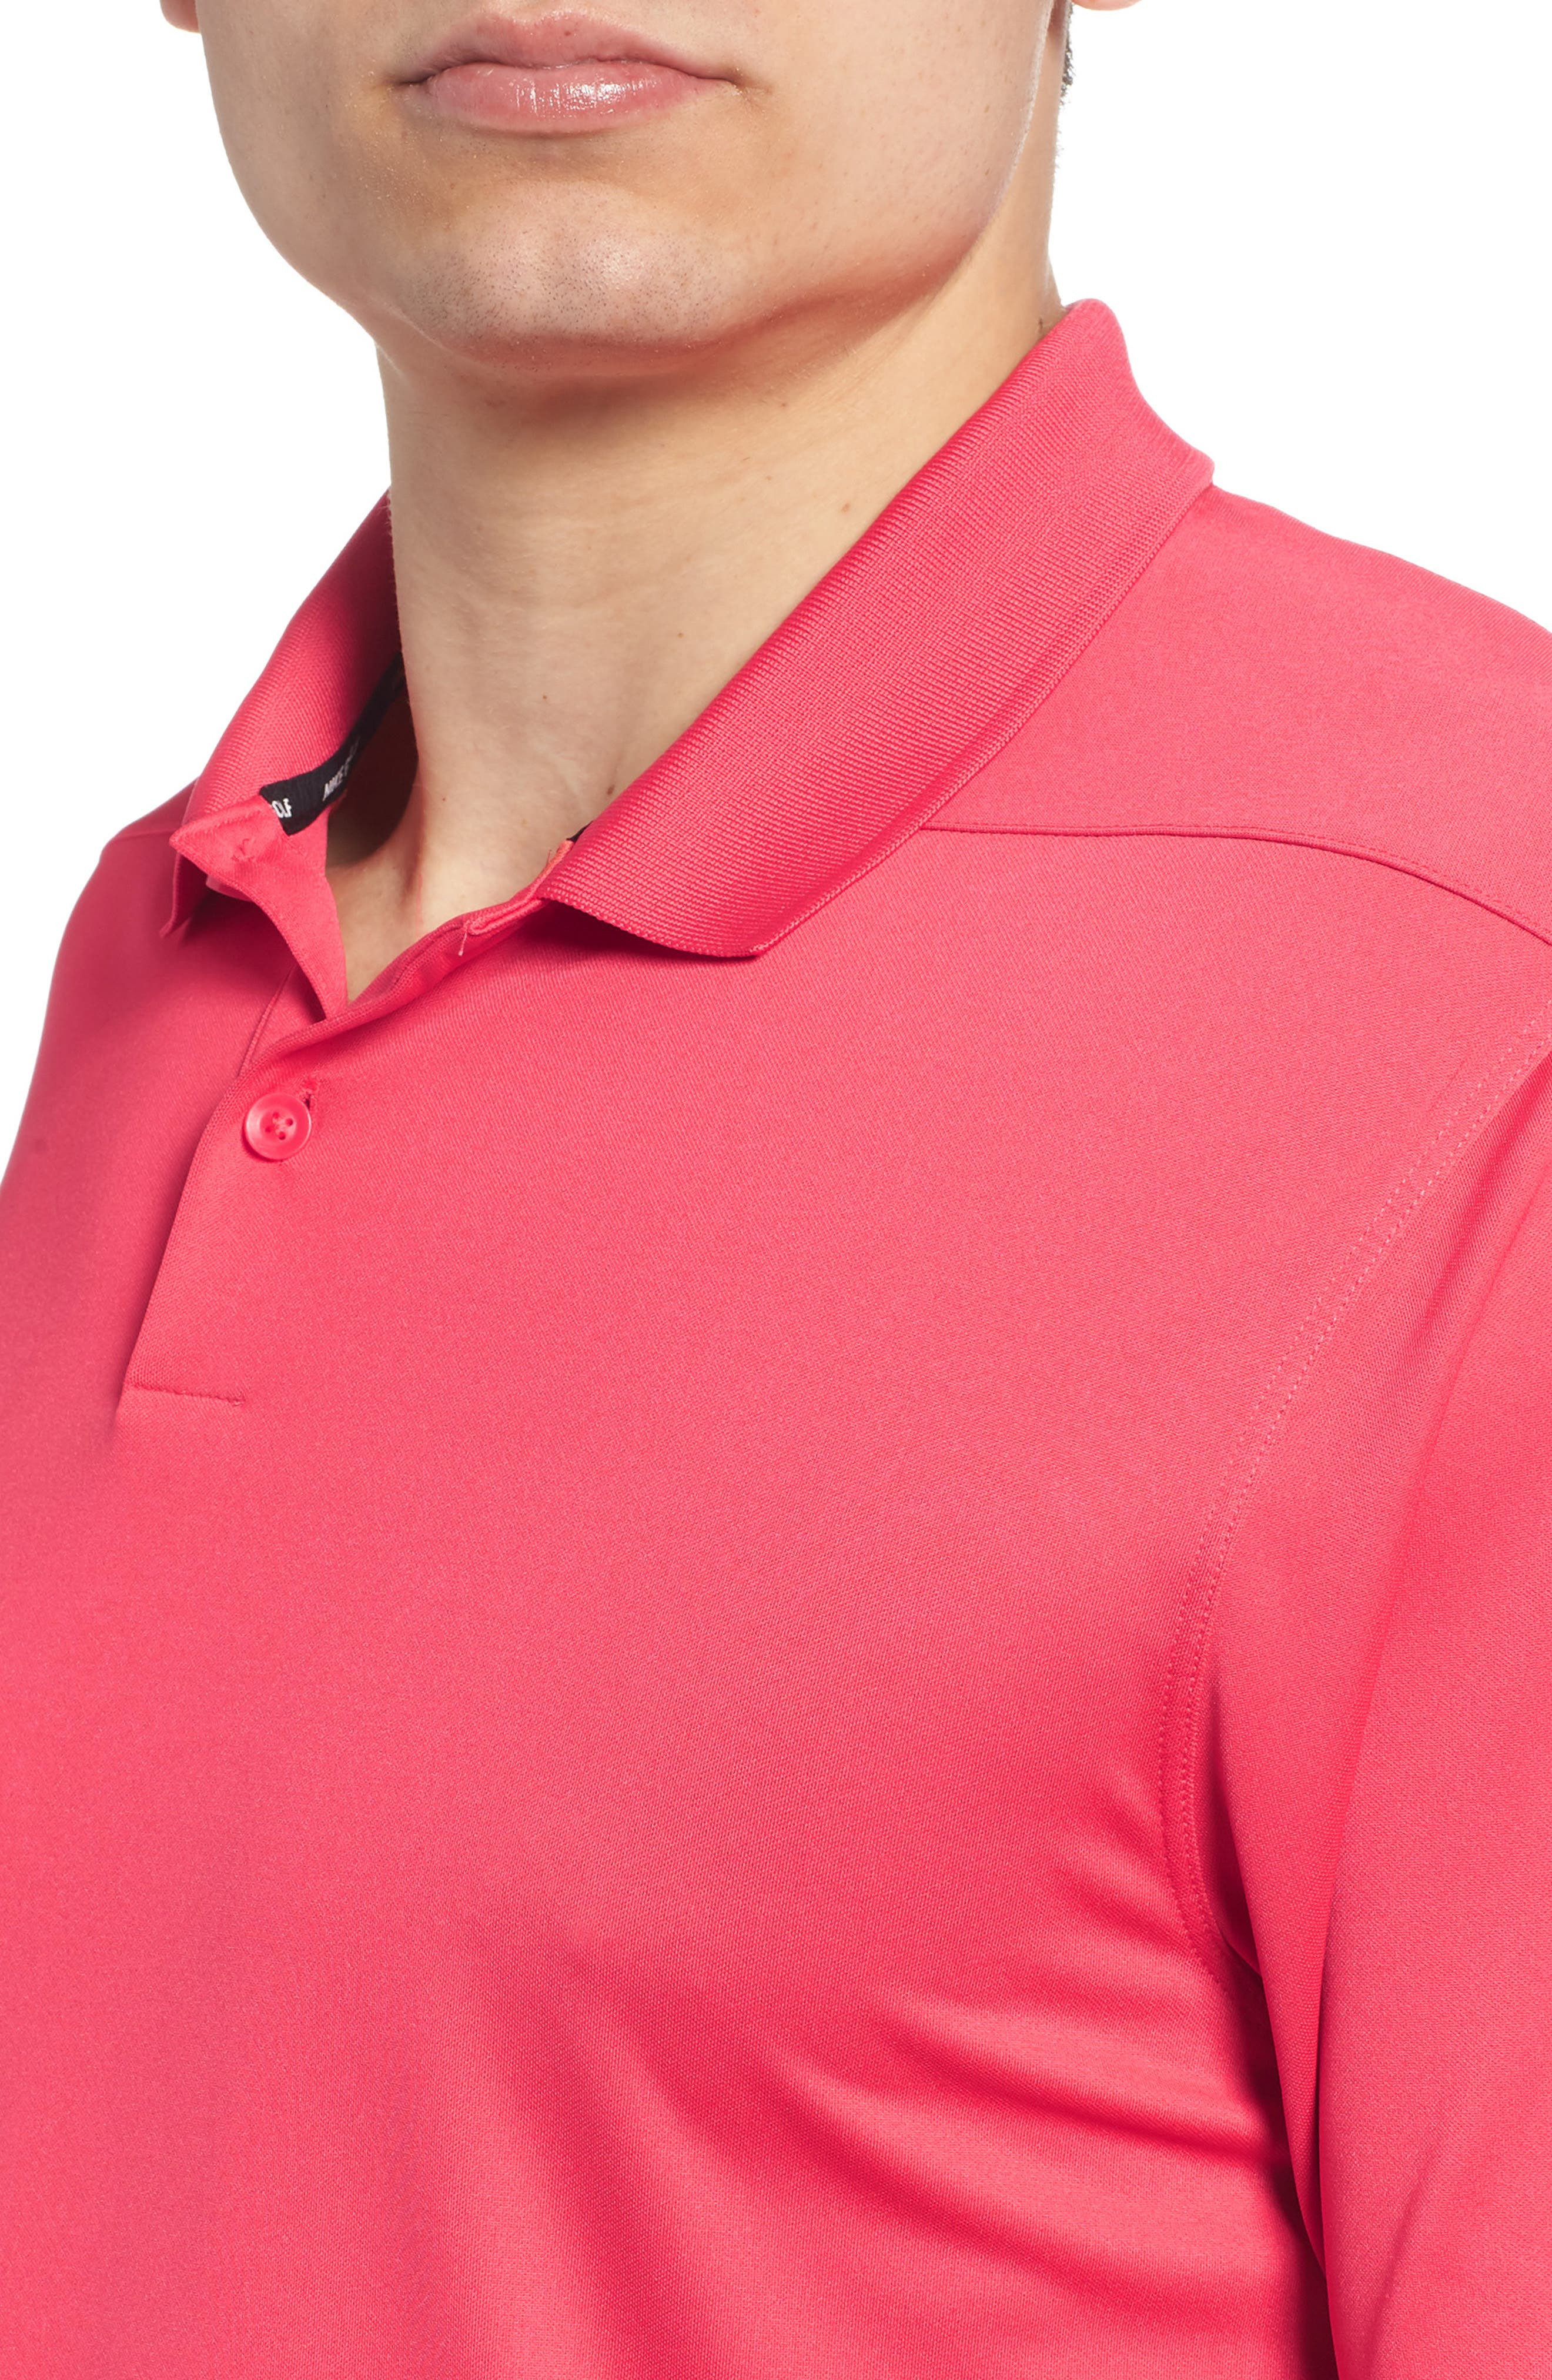 Dry Victory Golf Polo,                             Alternate thumbnail 4, color,                             Tropical Pink/ Black